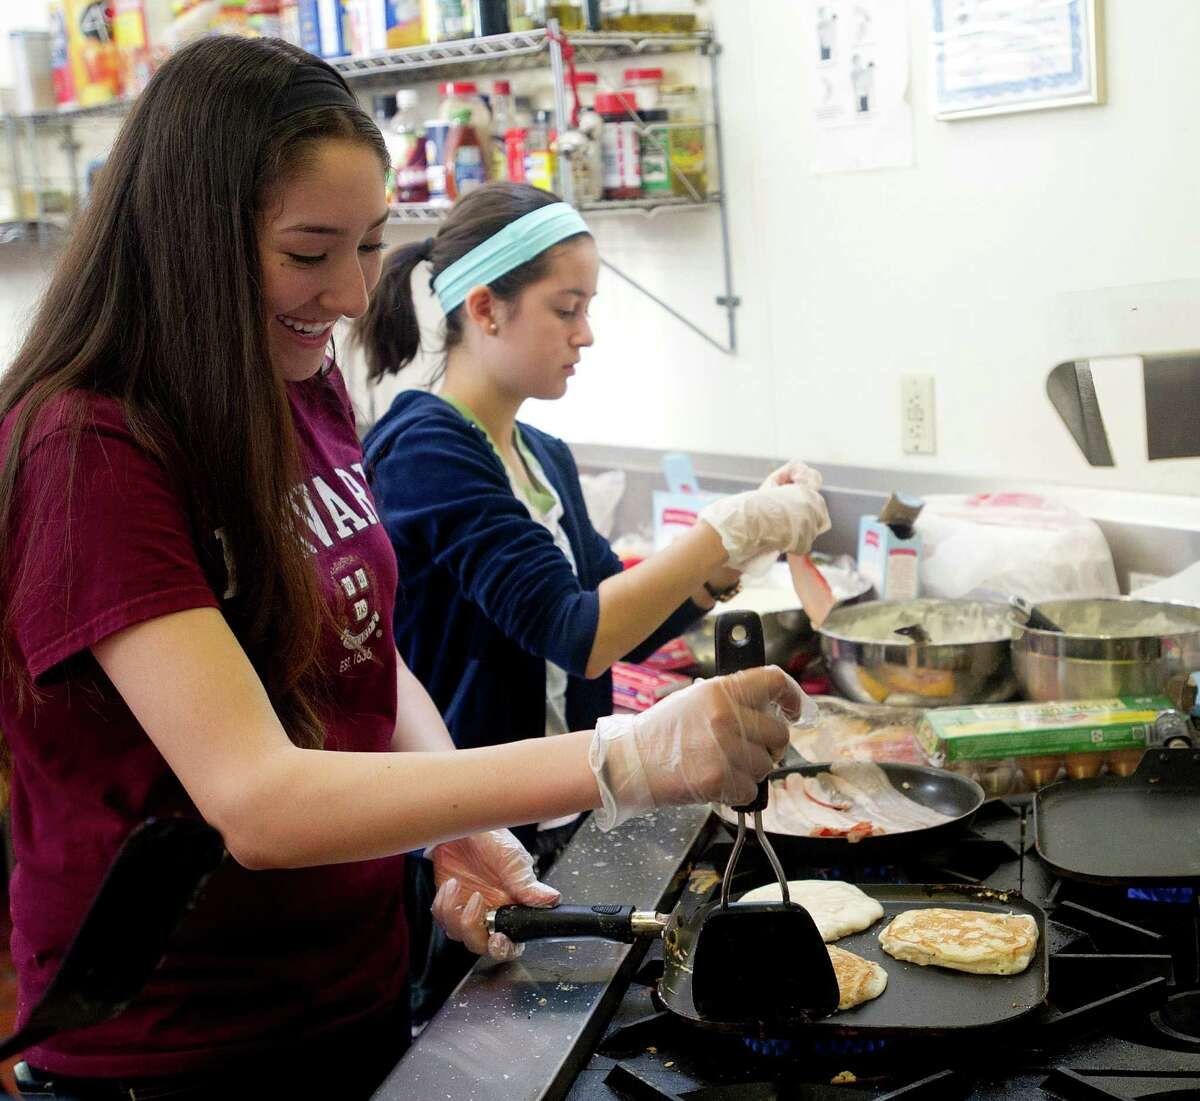 Westhill buildOn students Nancy Juarez, left, and Kelly Finn, right, make pancakes and bacon as they prepare breakfast at Inspirica for residents of the shelter on Saturday, March 22, 2014. The students competed against buildOn students from area schools to make meals using ingredients they collected from food drives for the Top Chef Cooking Competition.